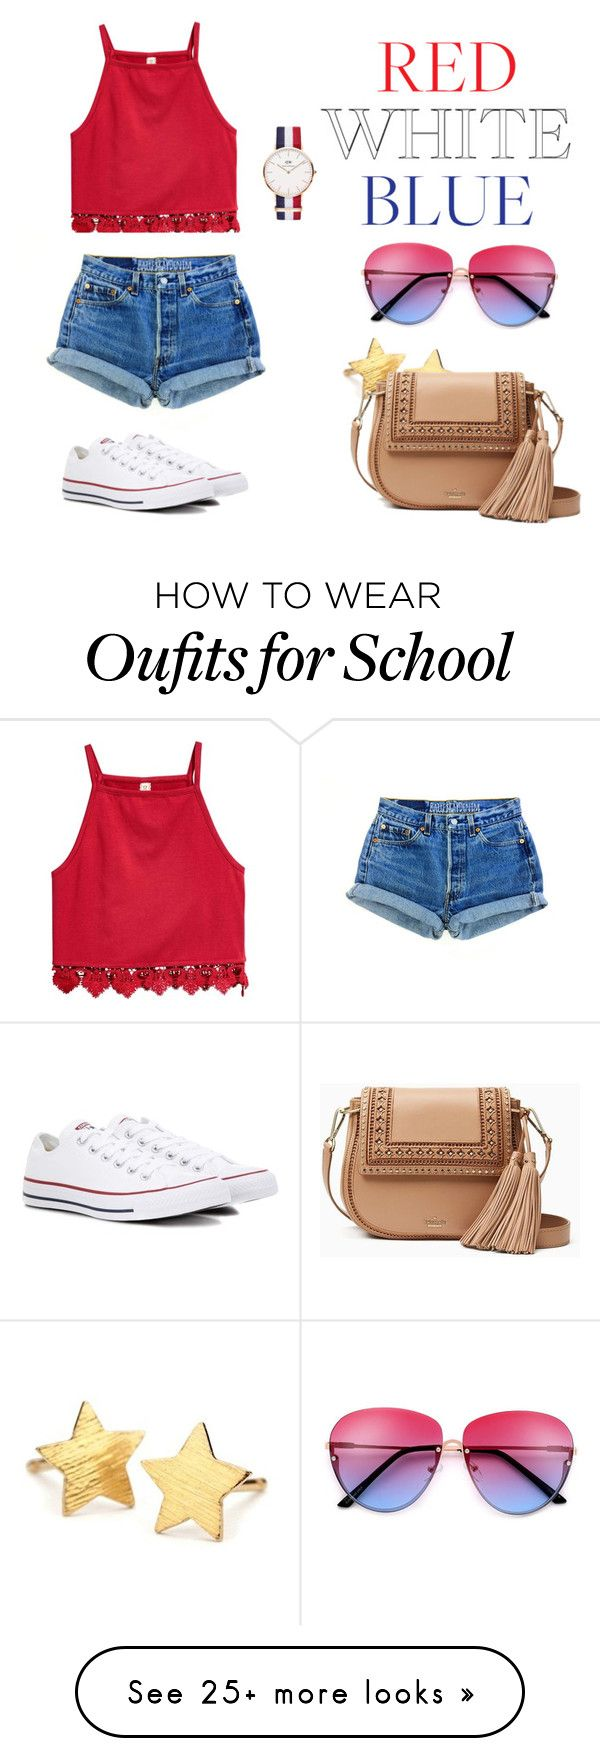 """bomb pop look"" by camarilloamy on Polyvore featuring Converse, Pernille Corydon, Daniel Wellington and Kate Spade"